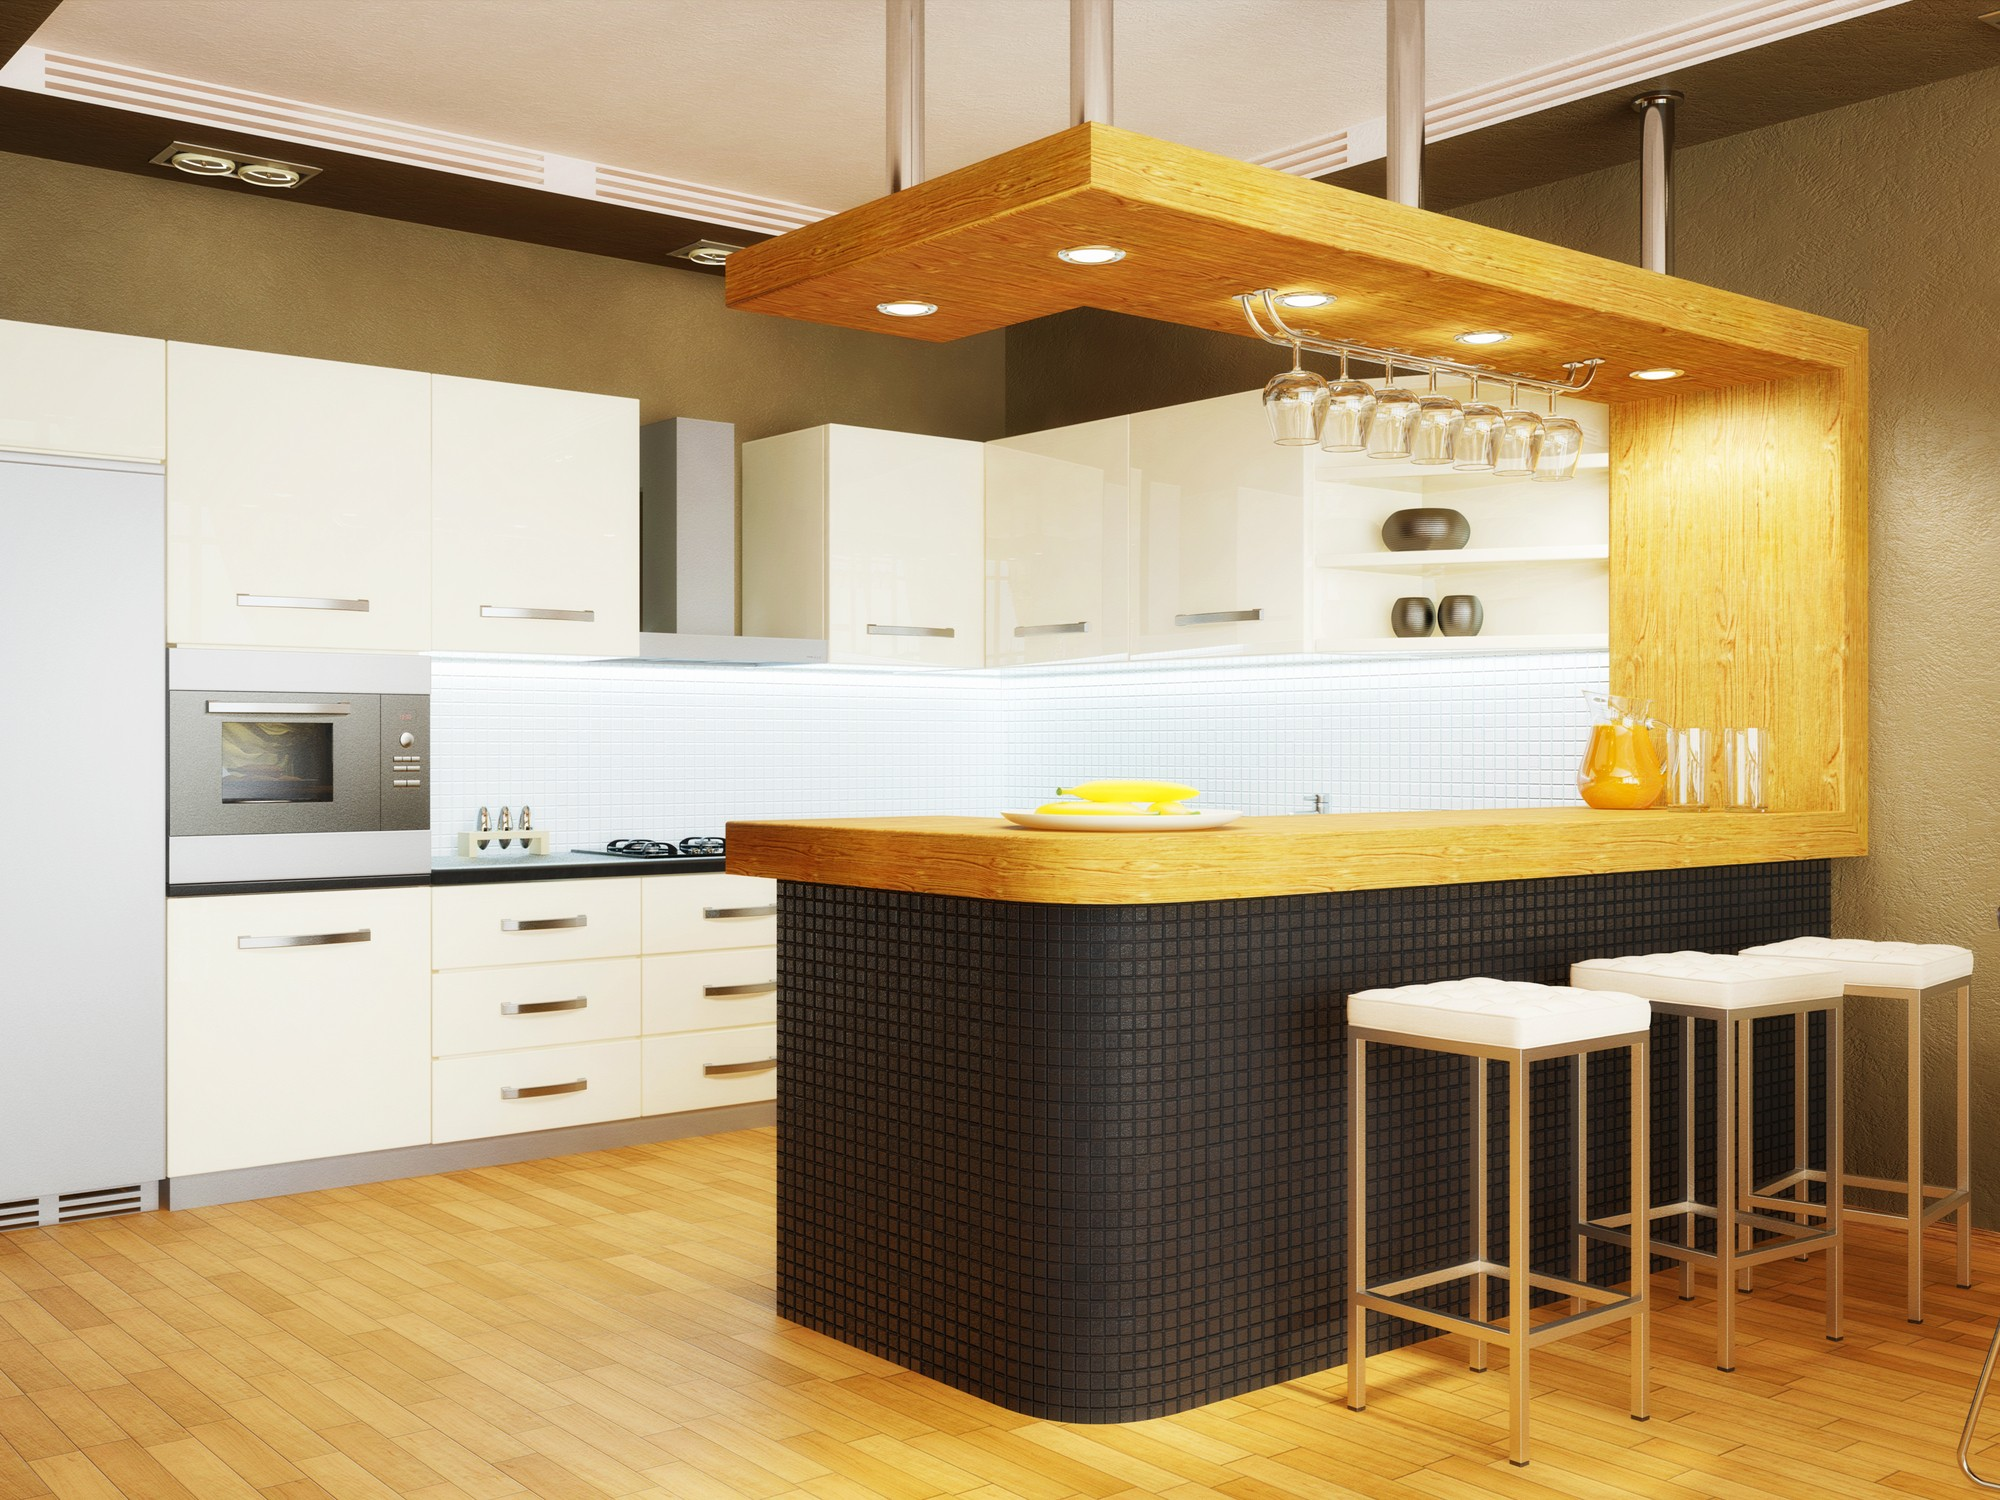 Modern interior kitchen with nice furniture inside